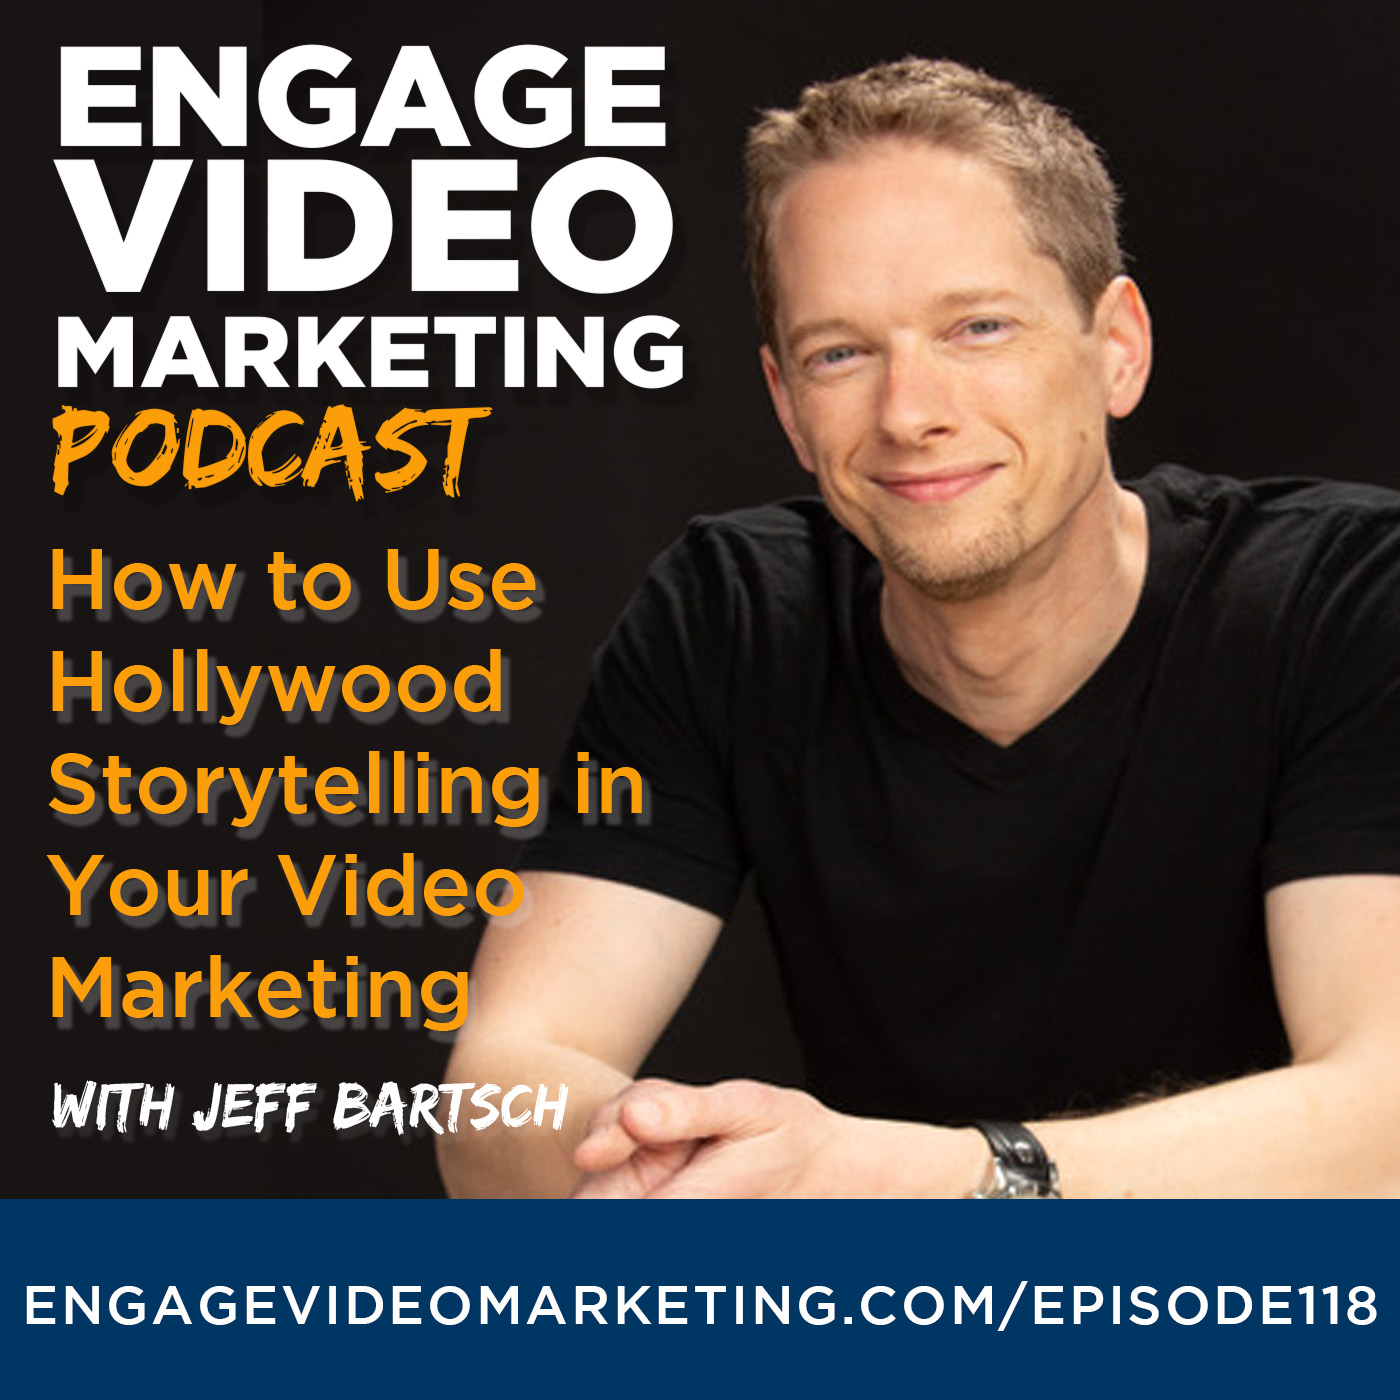 How to Use Hollywood Storytelling in Your Video Marketing with Jeff Bartsch